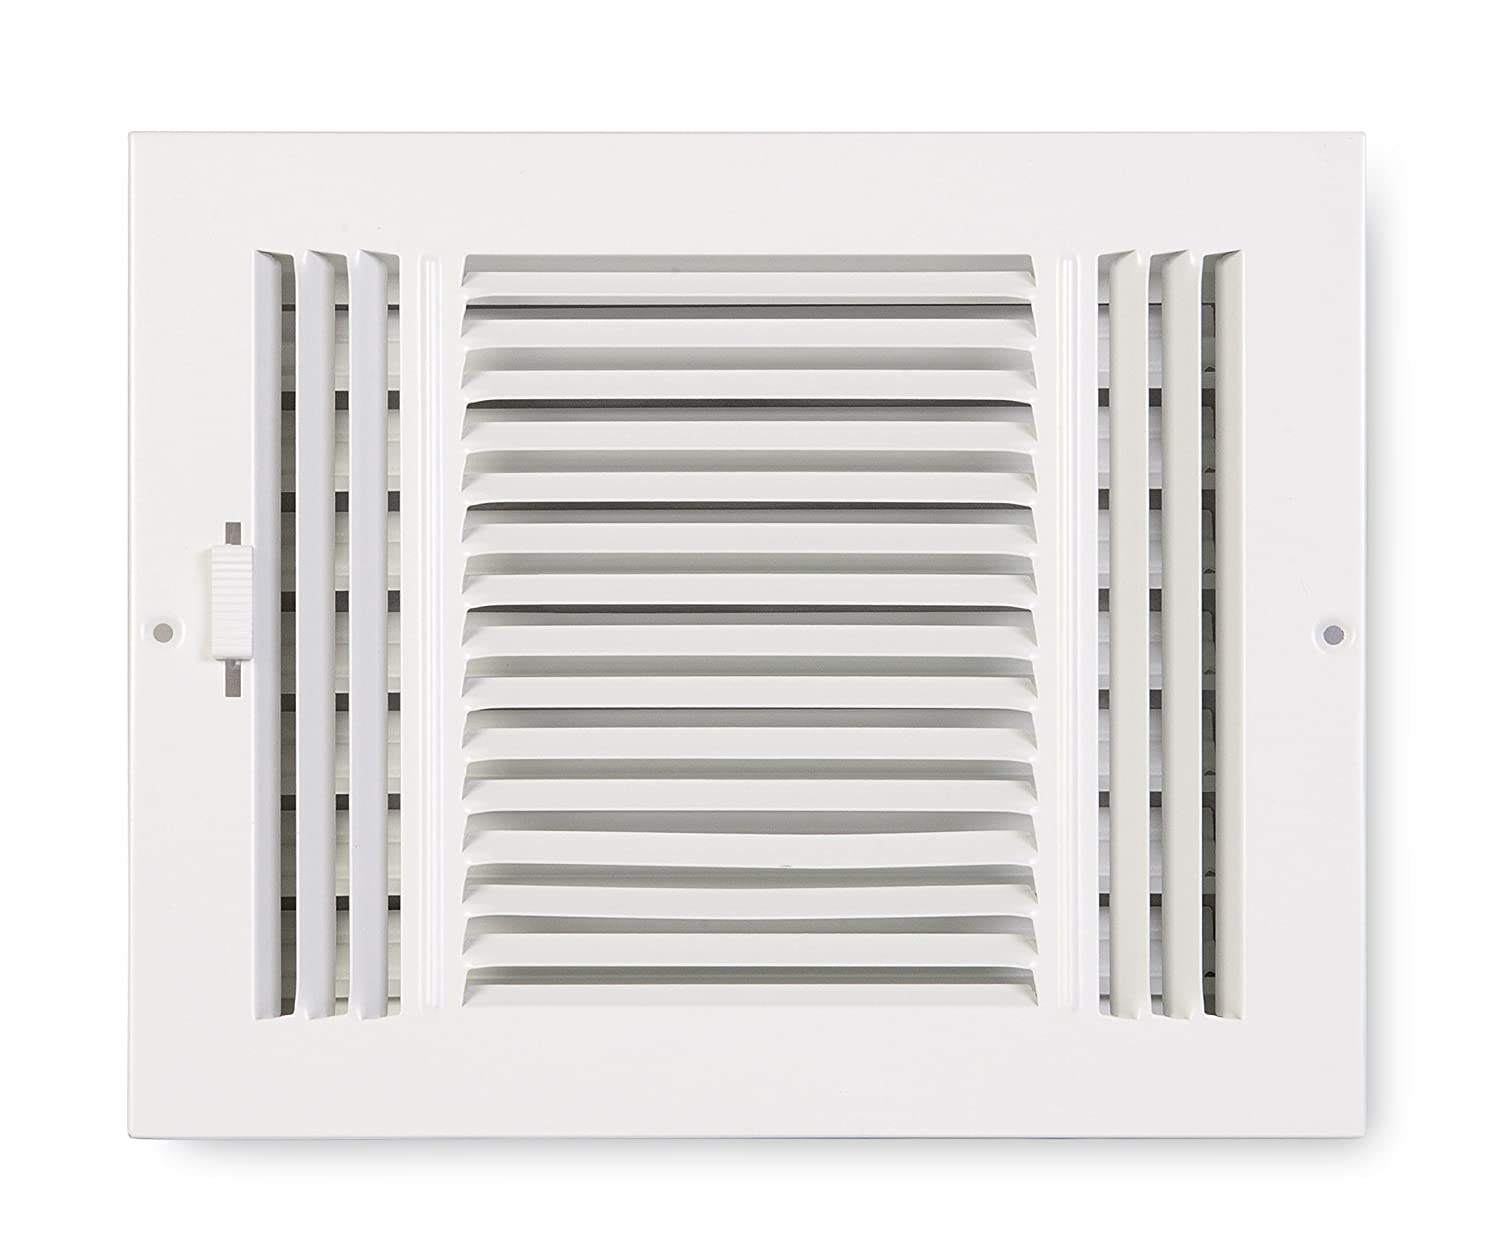 Accord ABSWWH3106 Sidewall/Ceiling Register with 3-Way Design, 10-Inch x 6-Inch(Duct Opening Measurements), White